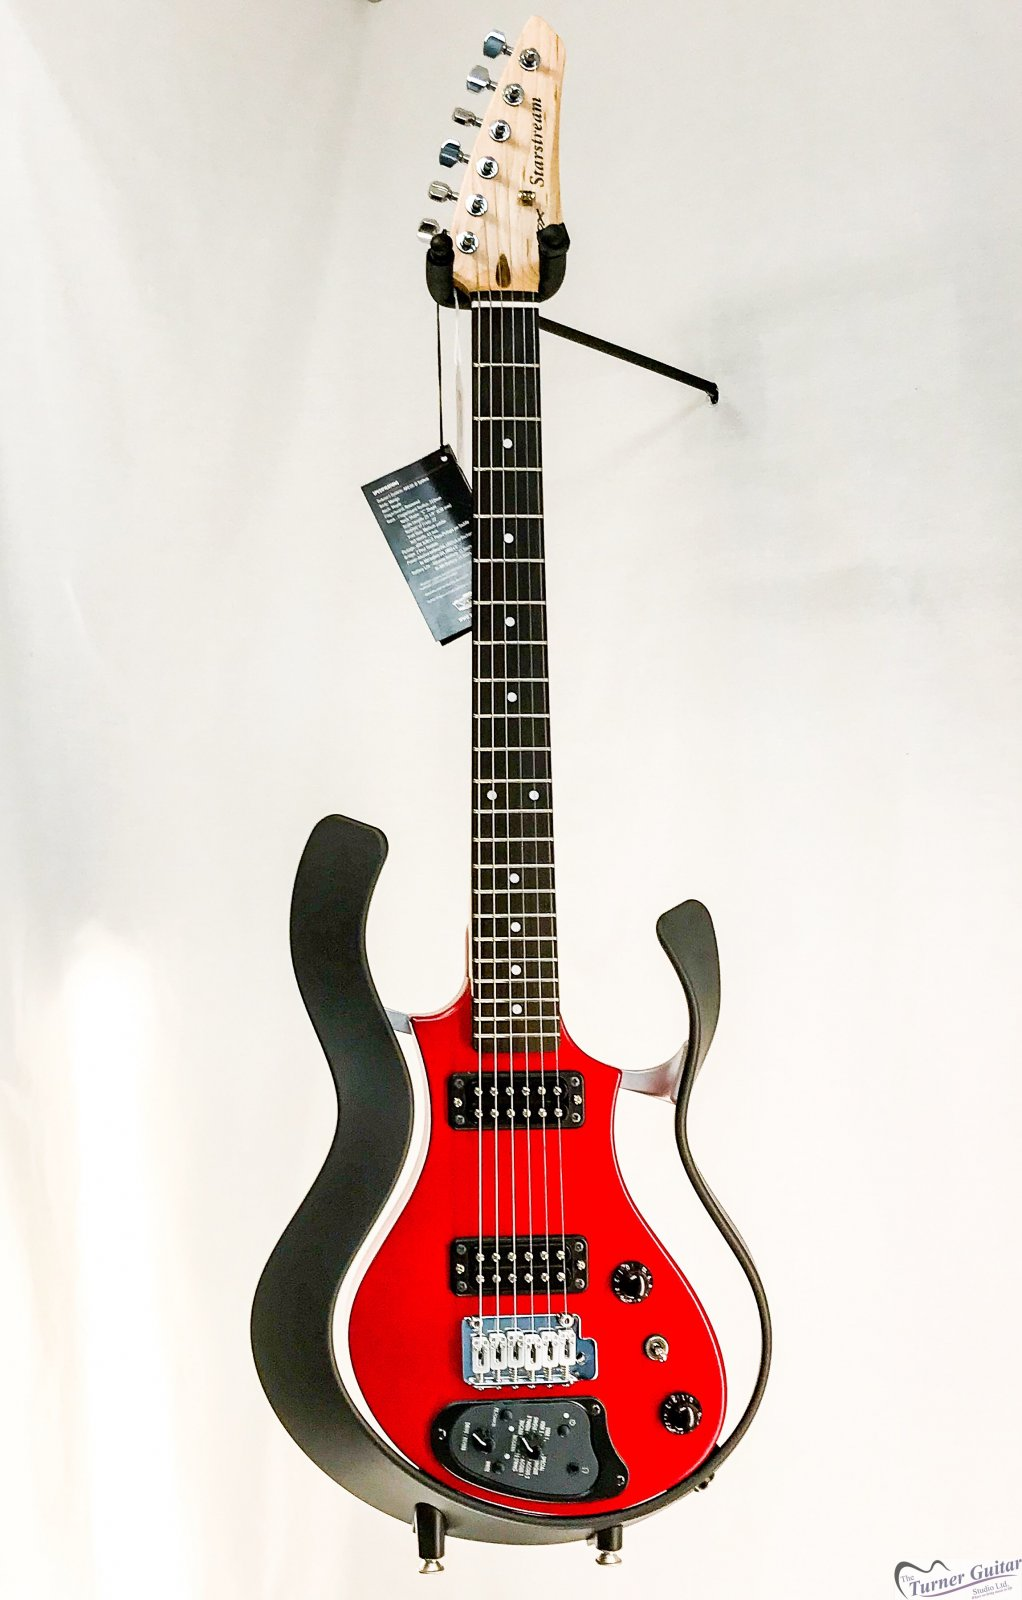 Vox Starstream Type 1 Modeling Guitar - Red Finish